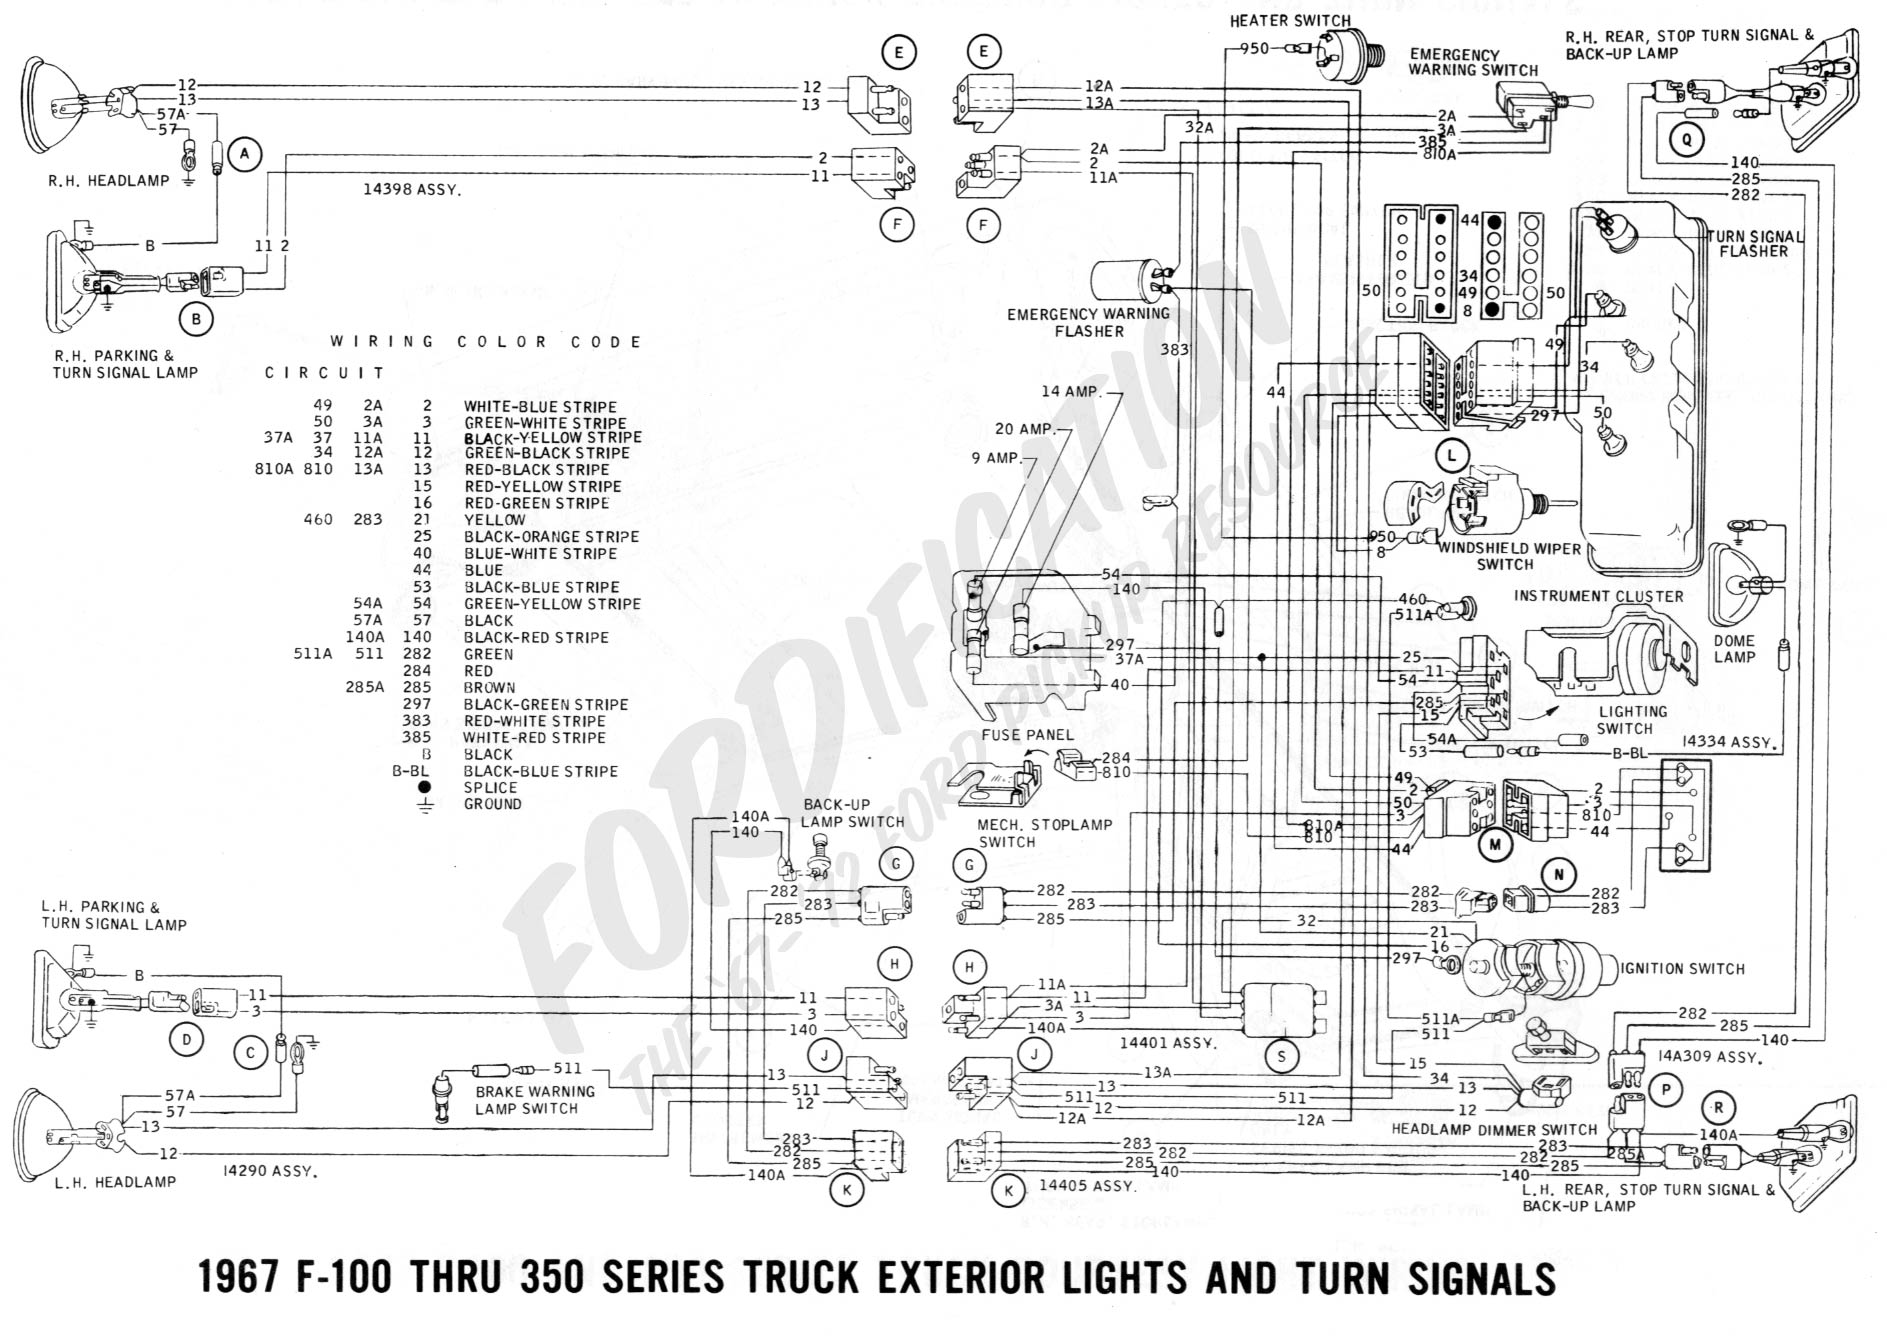 1970 Ford Radio Wiring Diagrams 2002 Yukon Trailer Wiring Diagram Plymouth Cukk Jeanjaures37 Fr